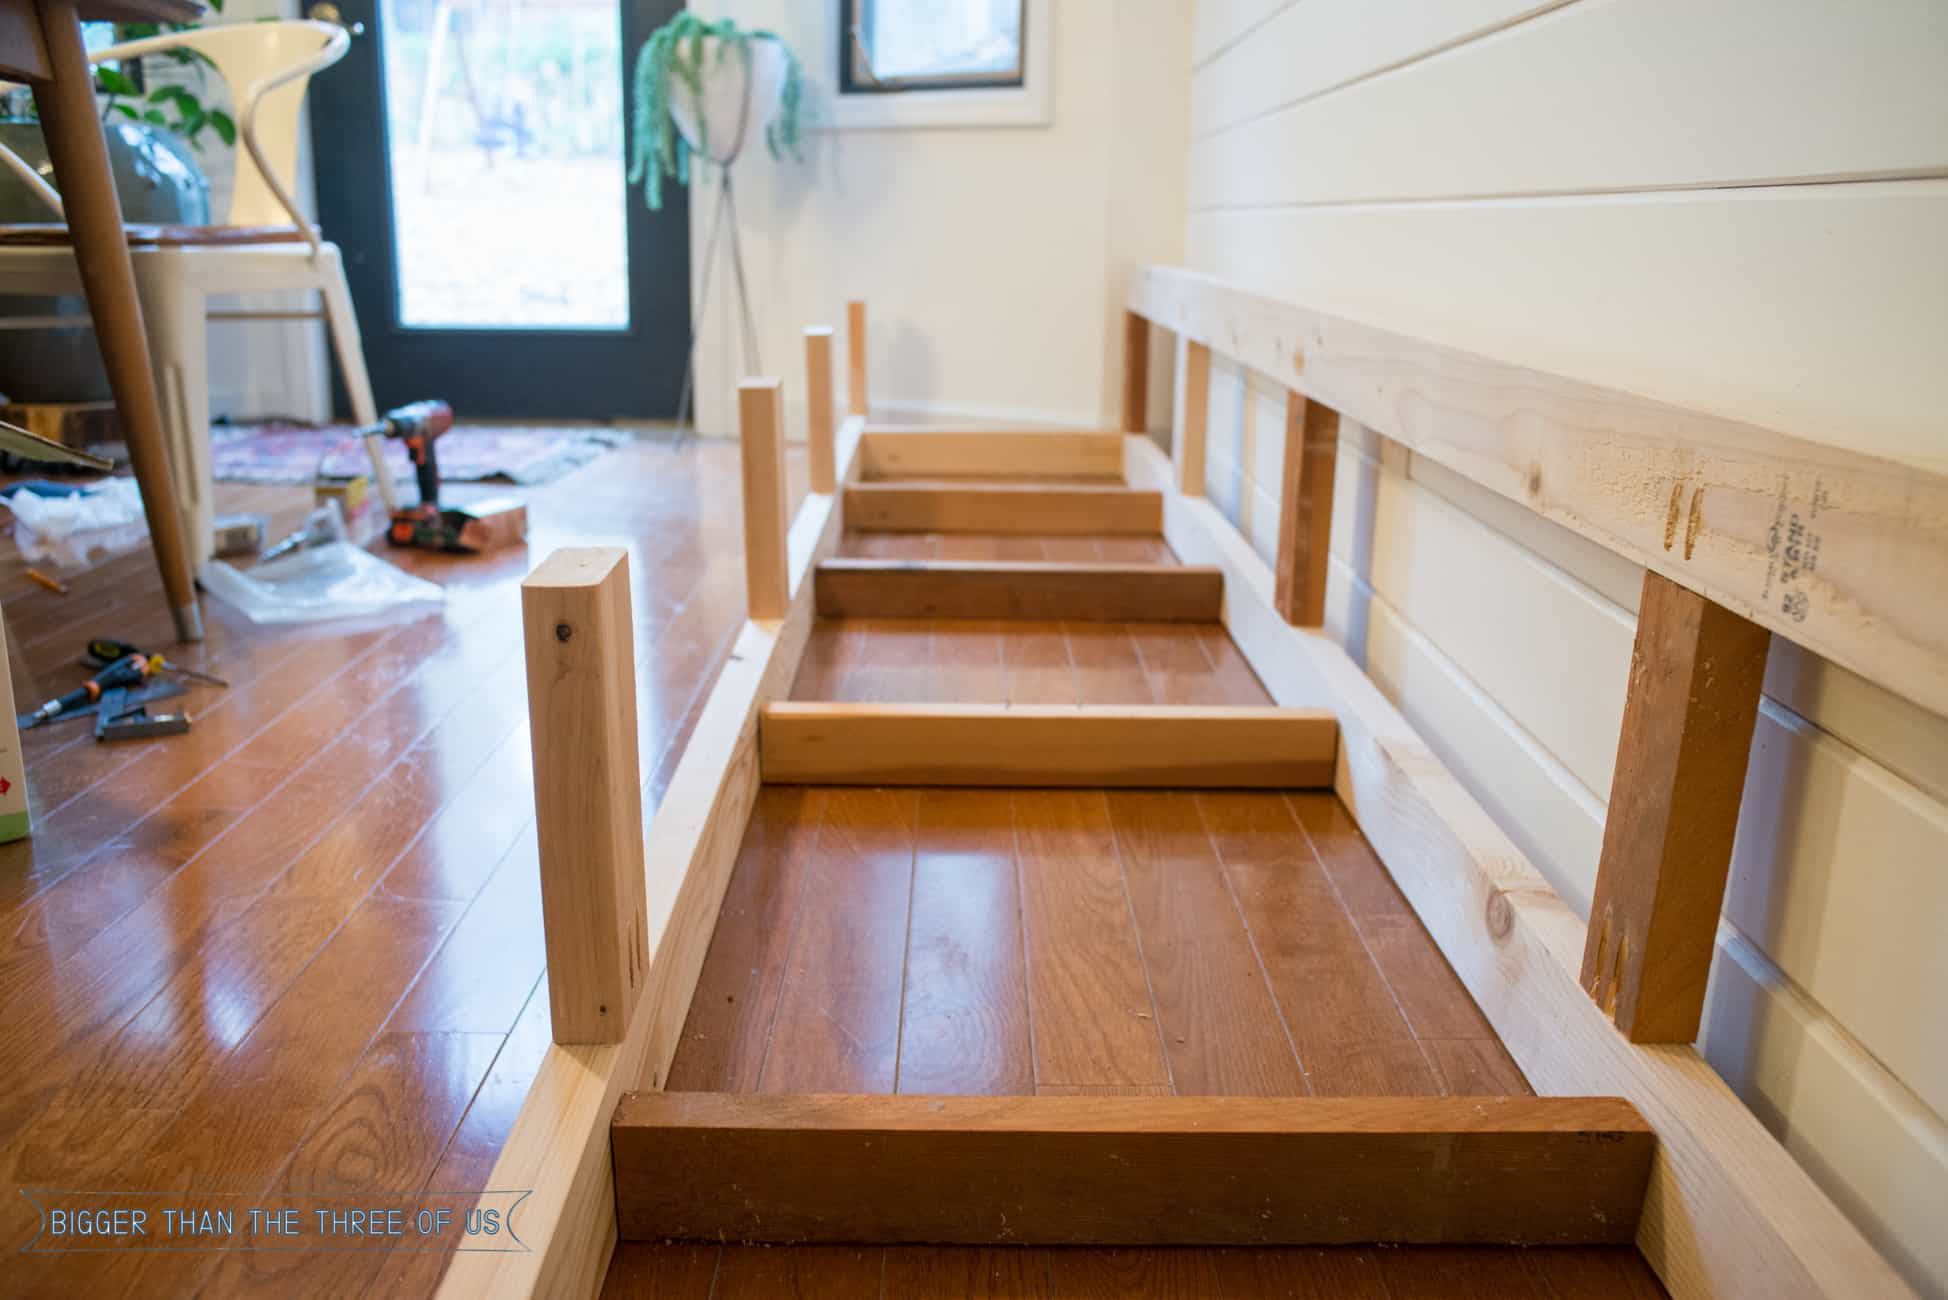 Best ideas about DIY Built In Bench . Save or Pin Built in Banquette Tutorial Bigger Than the Three of Us Now.